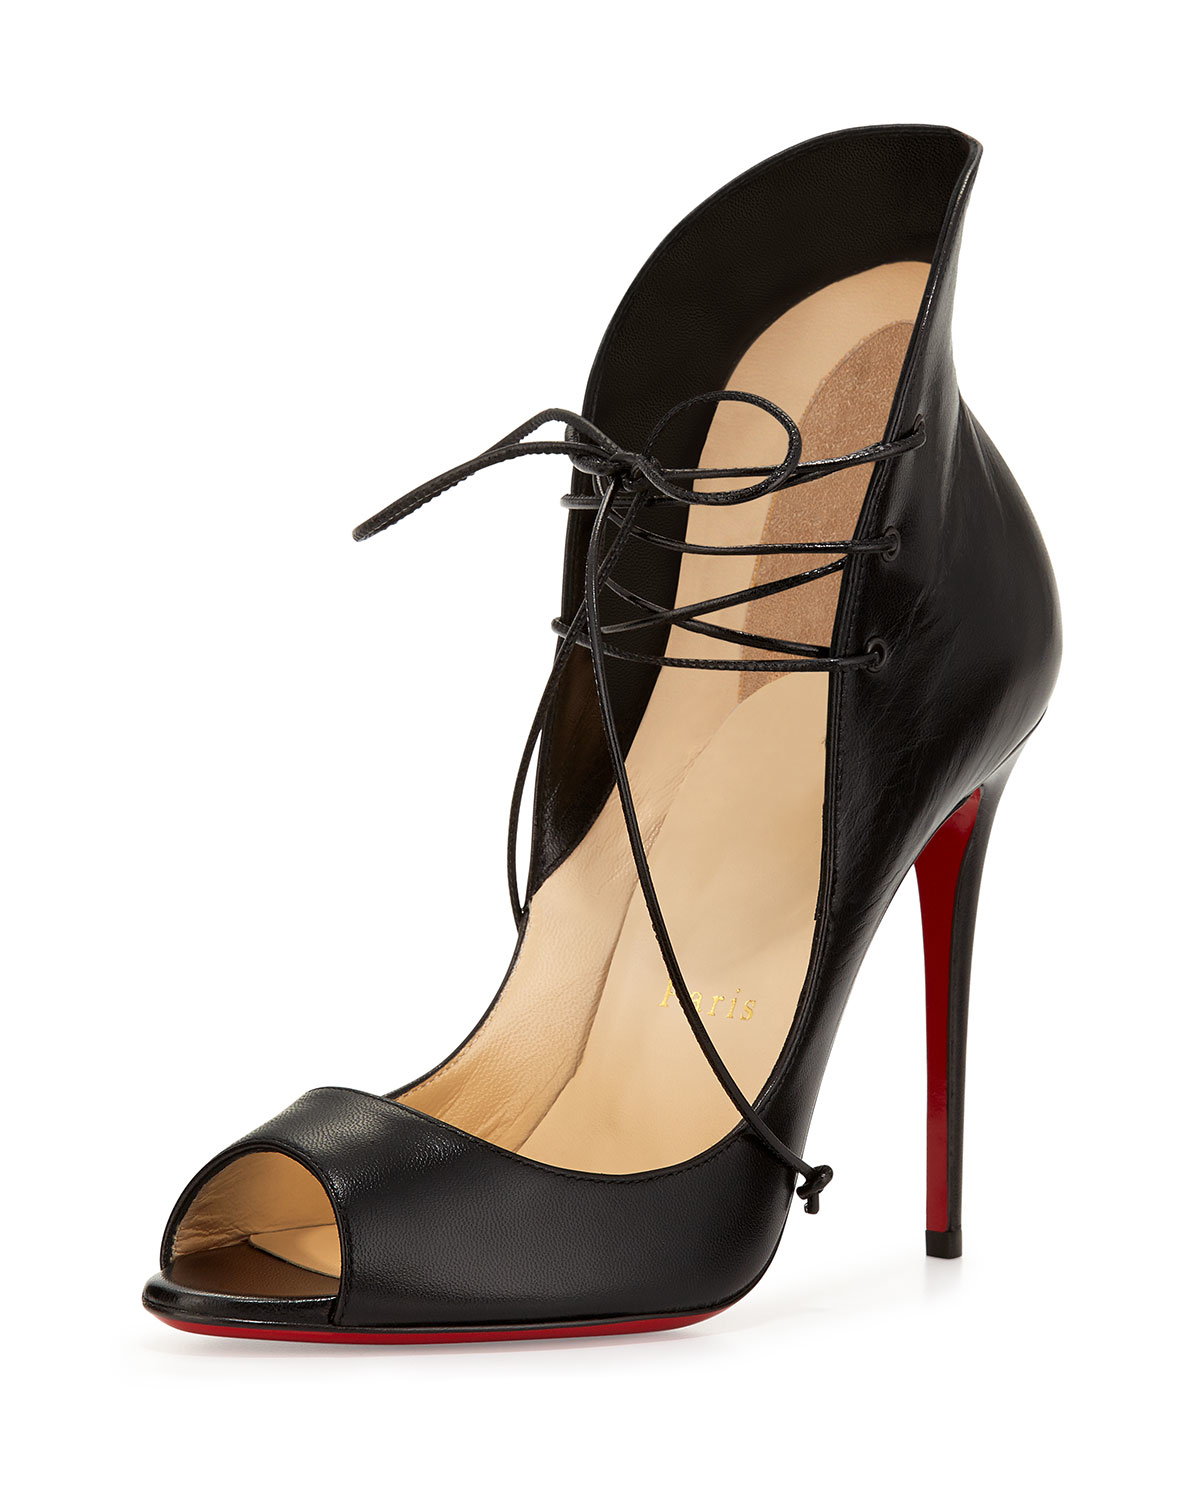 discount lowest price visit cheap price Christian Louboutin Suede Round-Toe Pumps w/ Tags clearance extremely clearance online fake NJOxgz0Gm